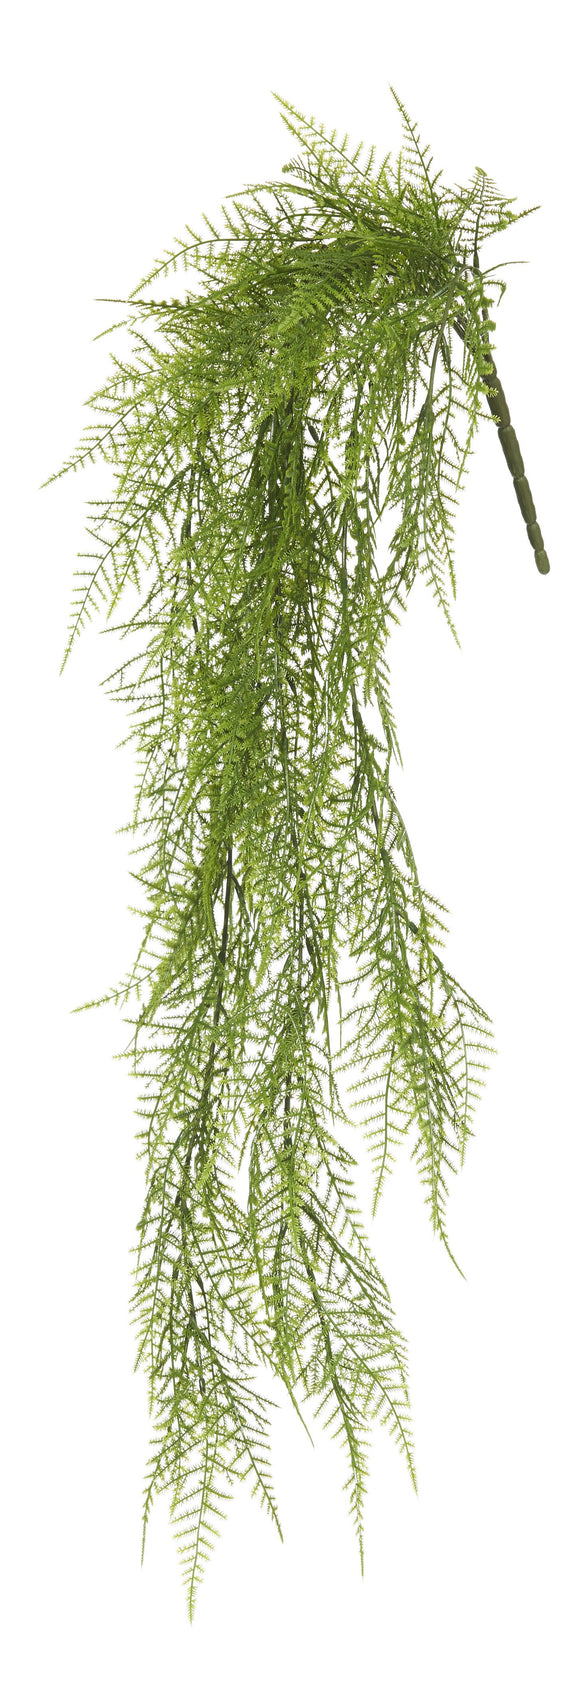 Greenery - Airfern Hanging Bush - 84cm